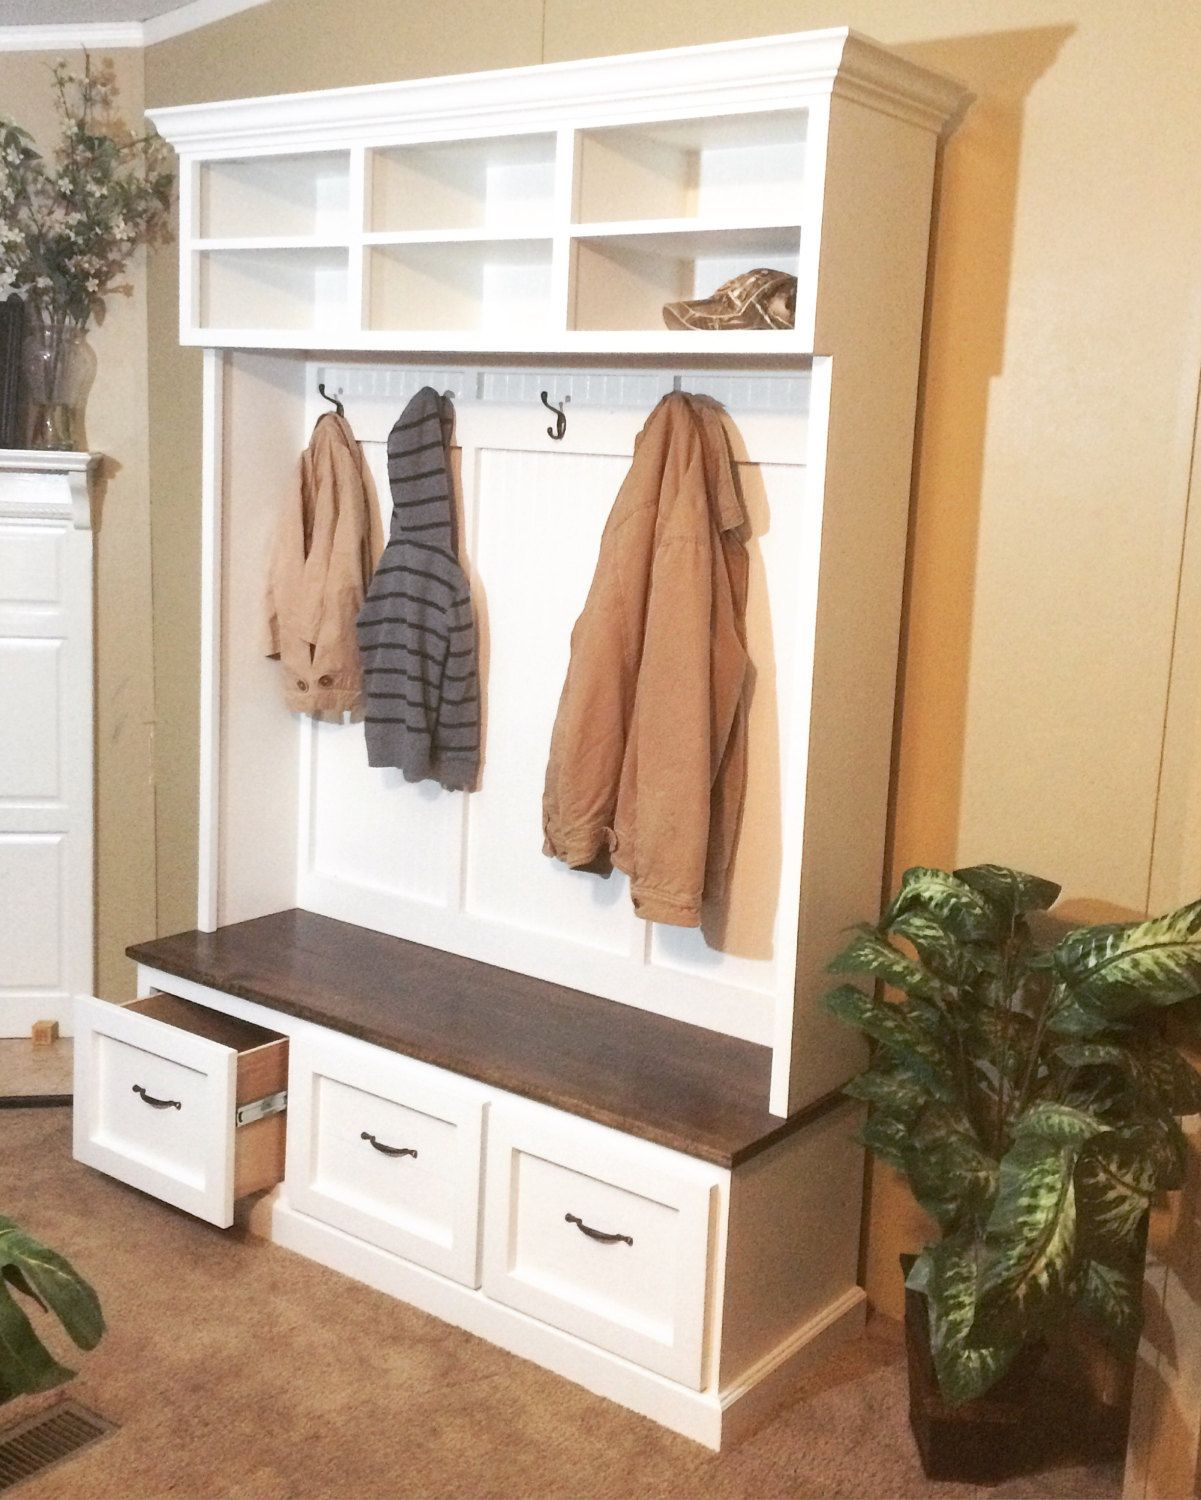 THE AMANA 4 Section Entryway Bench